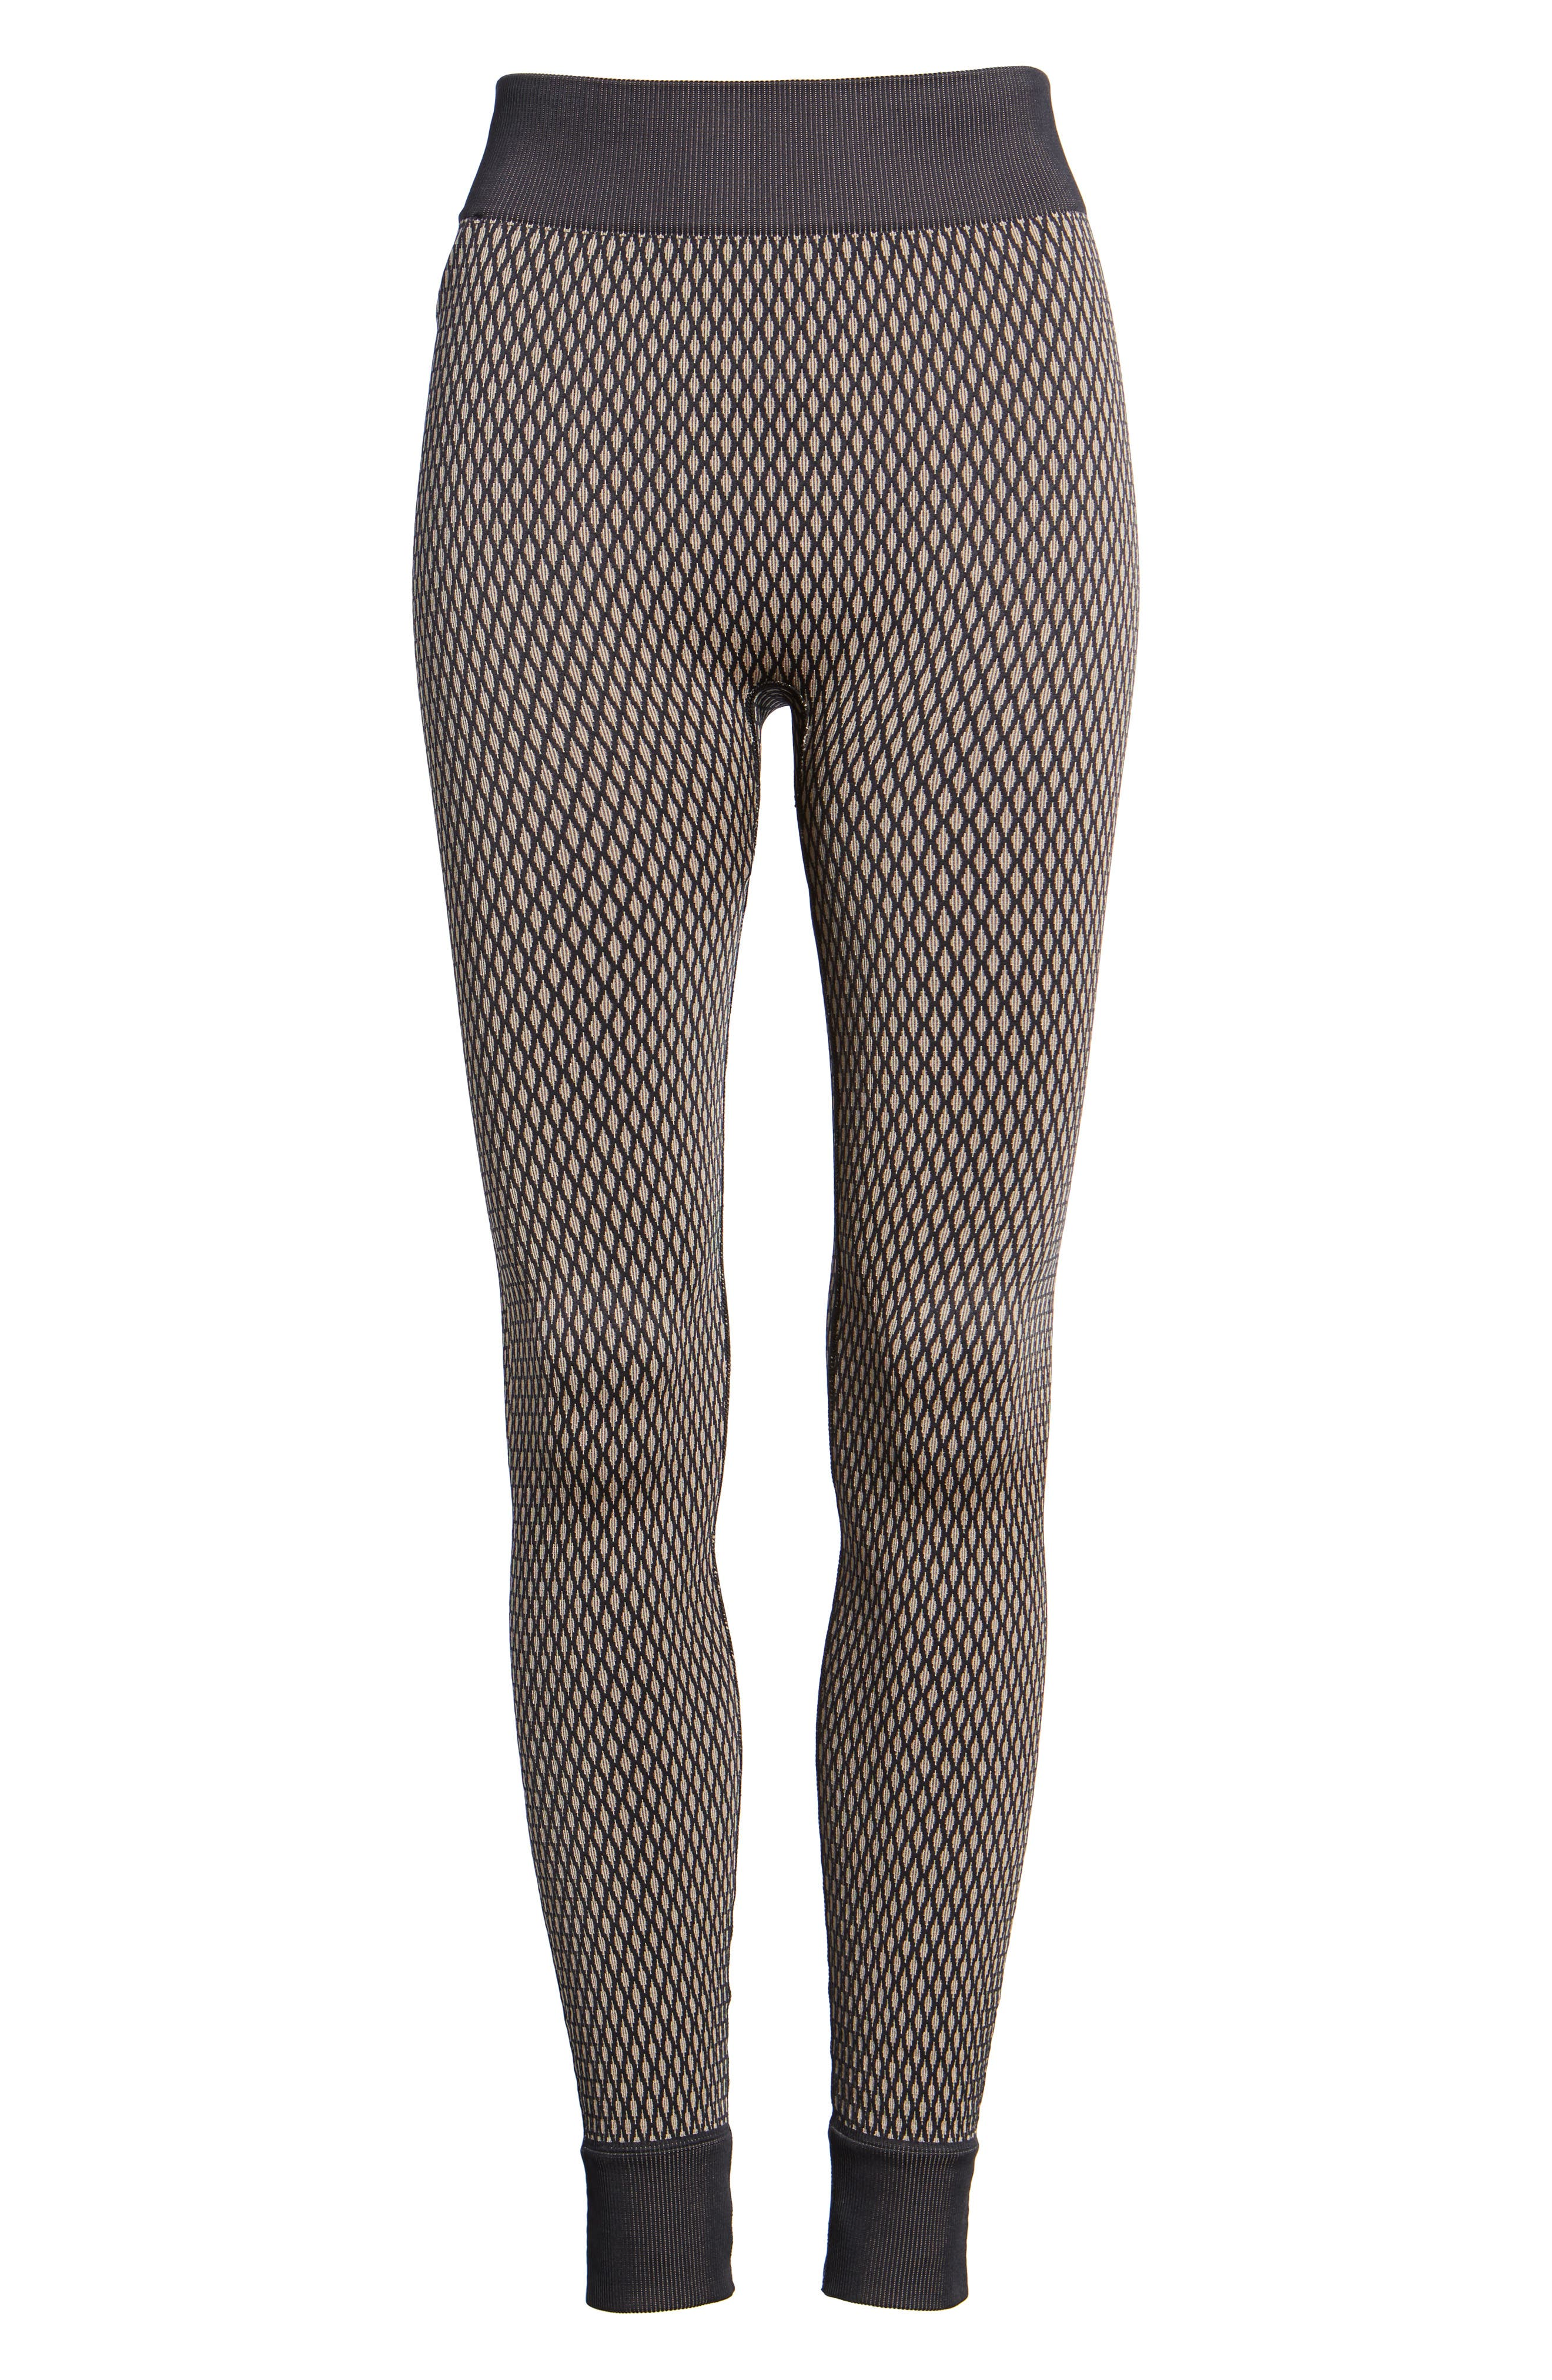 Fishnet Seamless Leggings,                             Alternate thumbnail 7, color,                             001